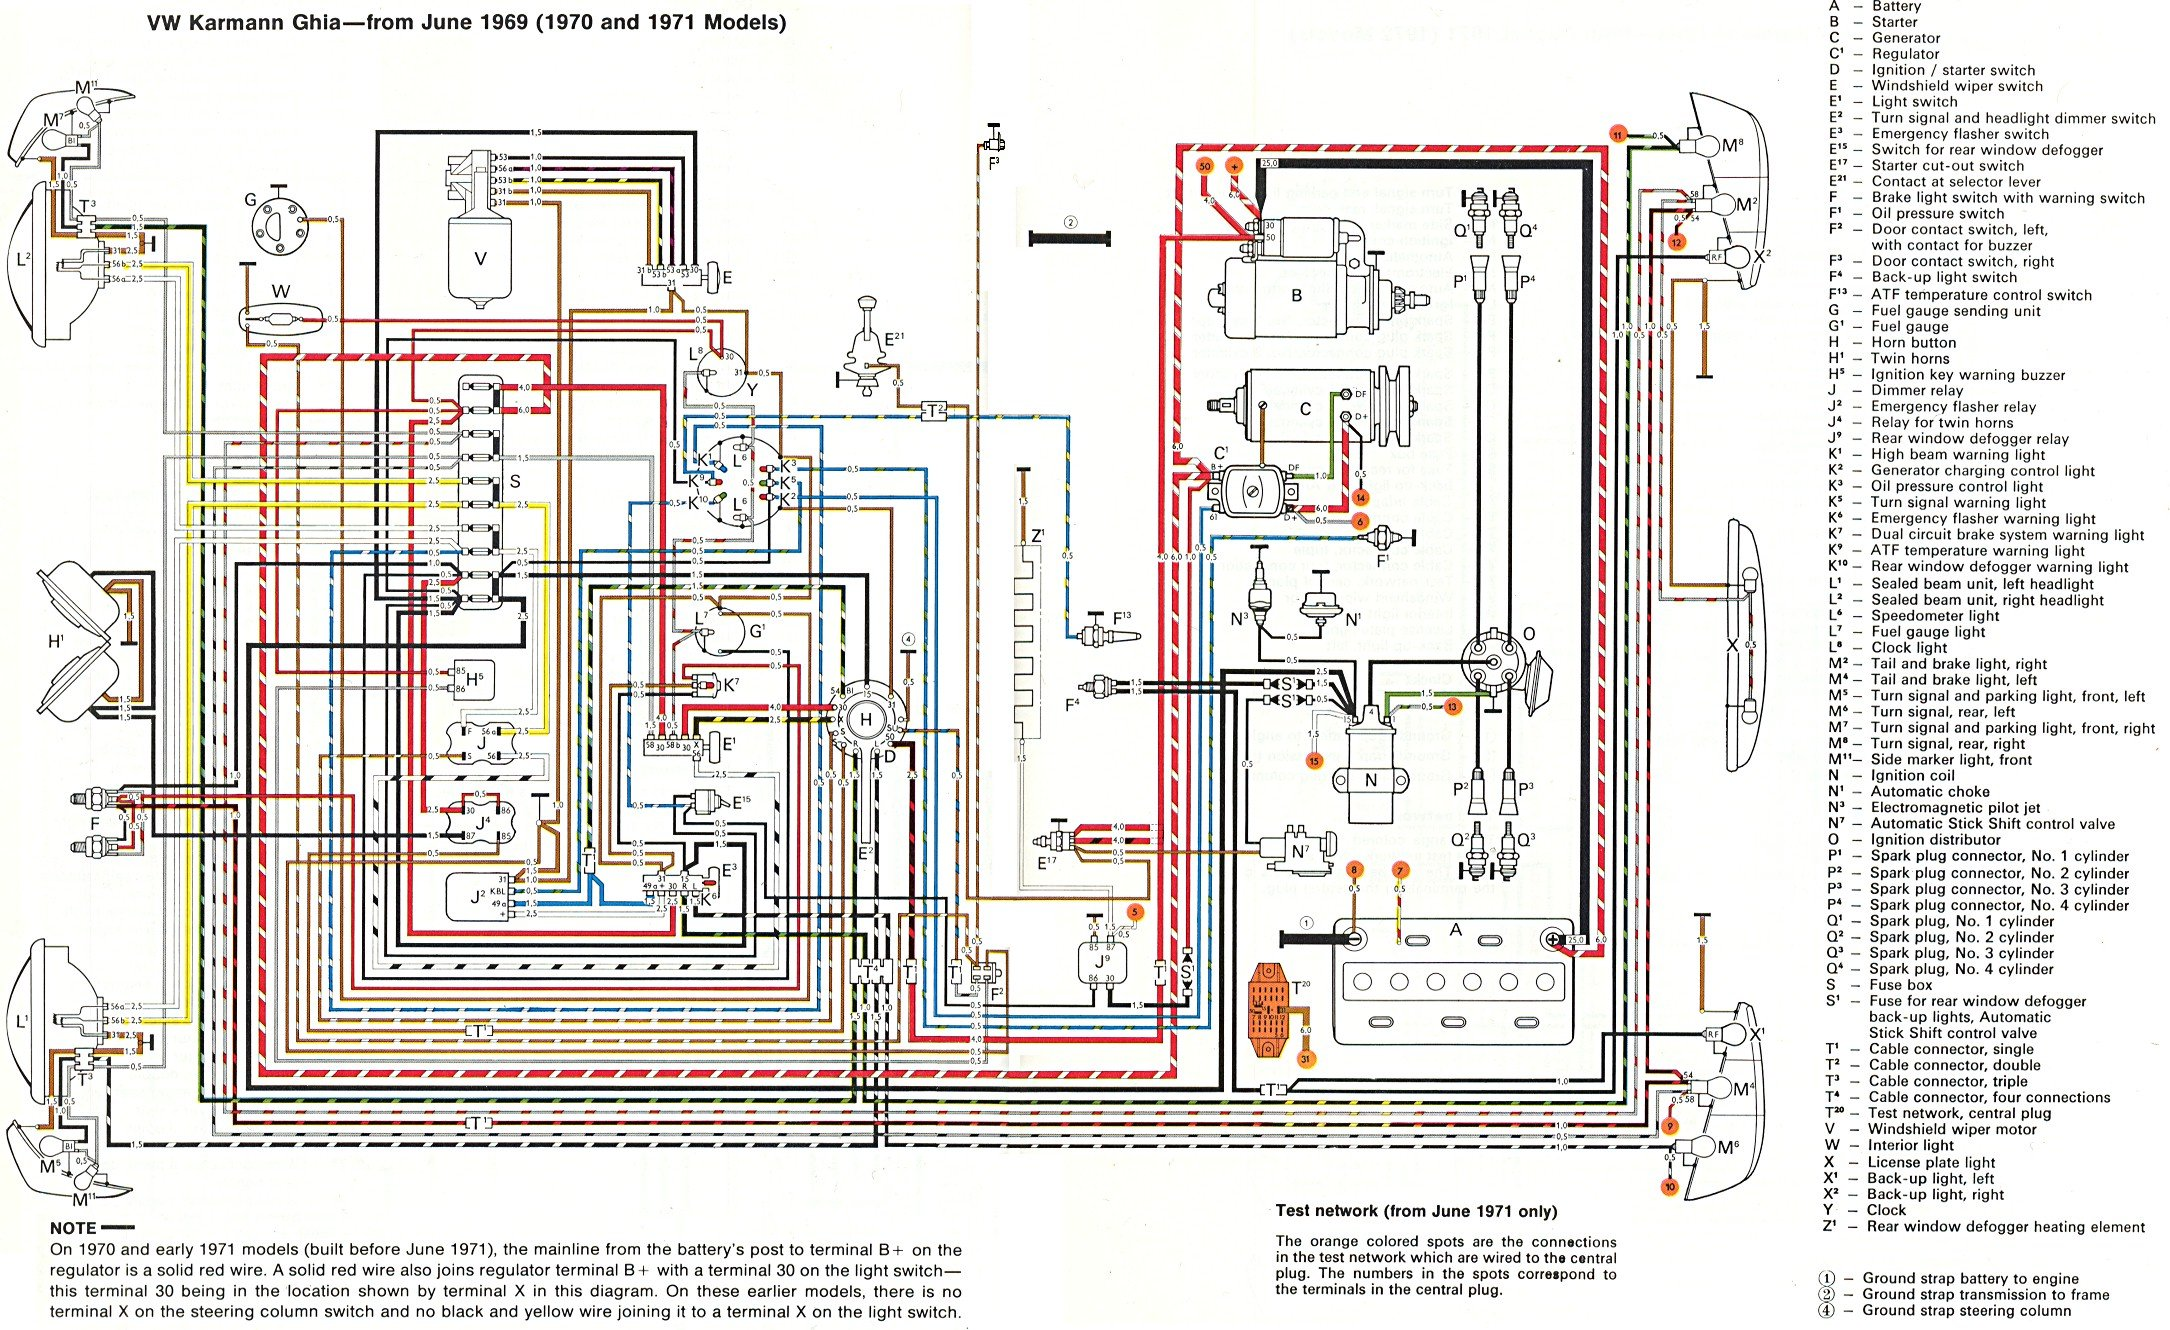 74 Camaro Wiring Diagram Basic 1968 72 Karmann Ghia Free Picture Schematics Rh Seniorlivinguniversity Co